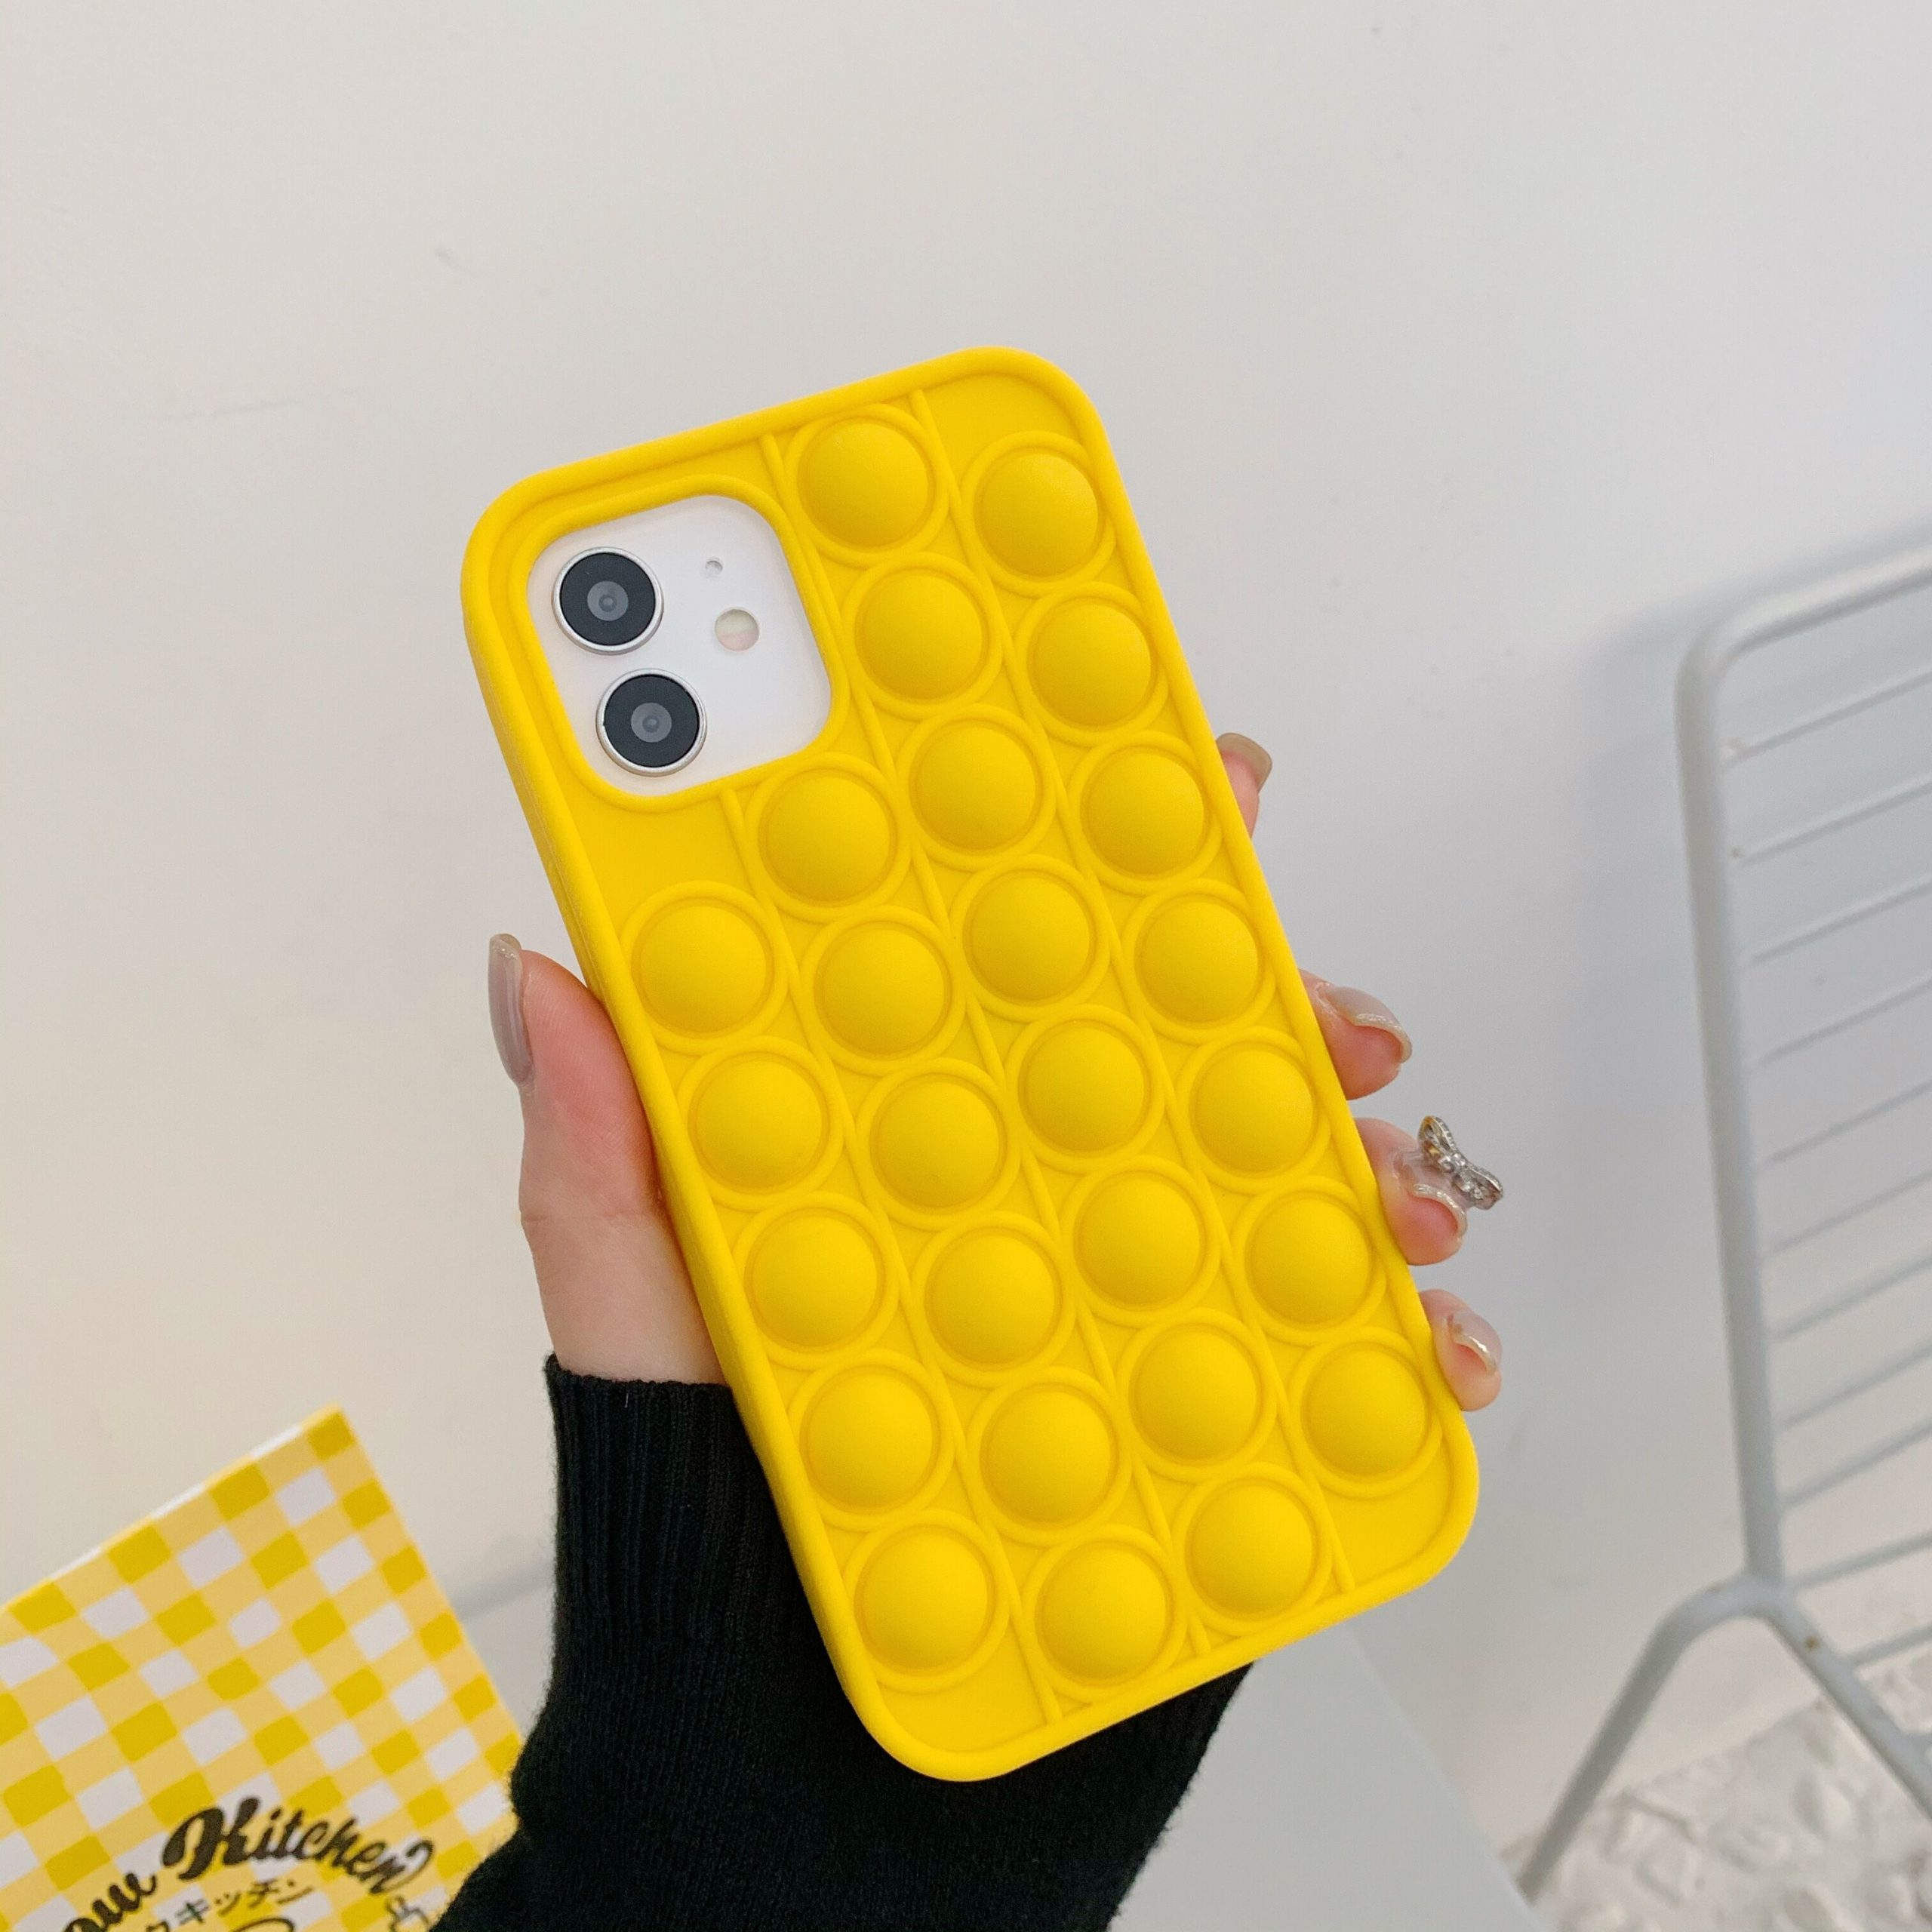 pop it anti stress yellow silicone phone case for iphone fidget toy 7731 - Wacky Track